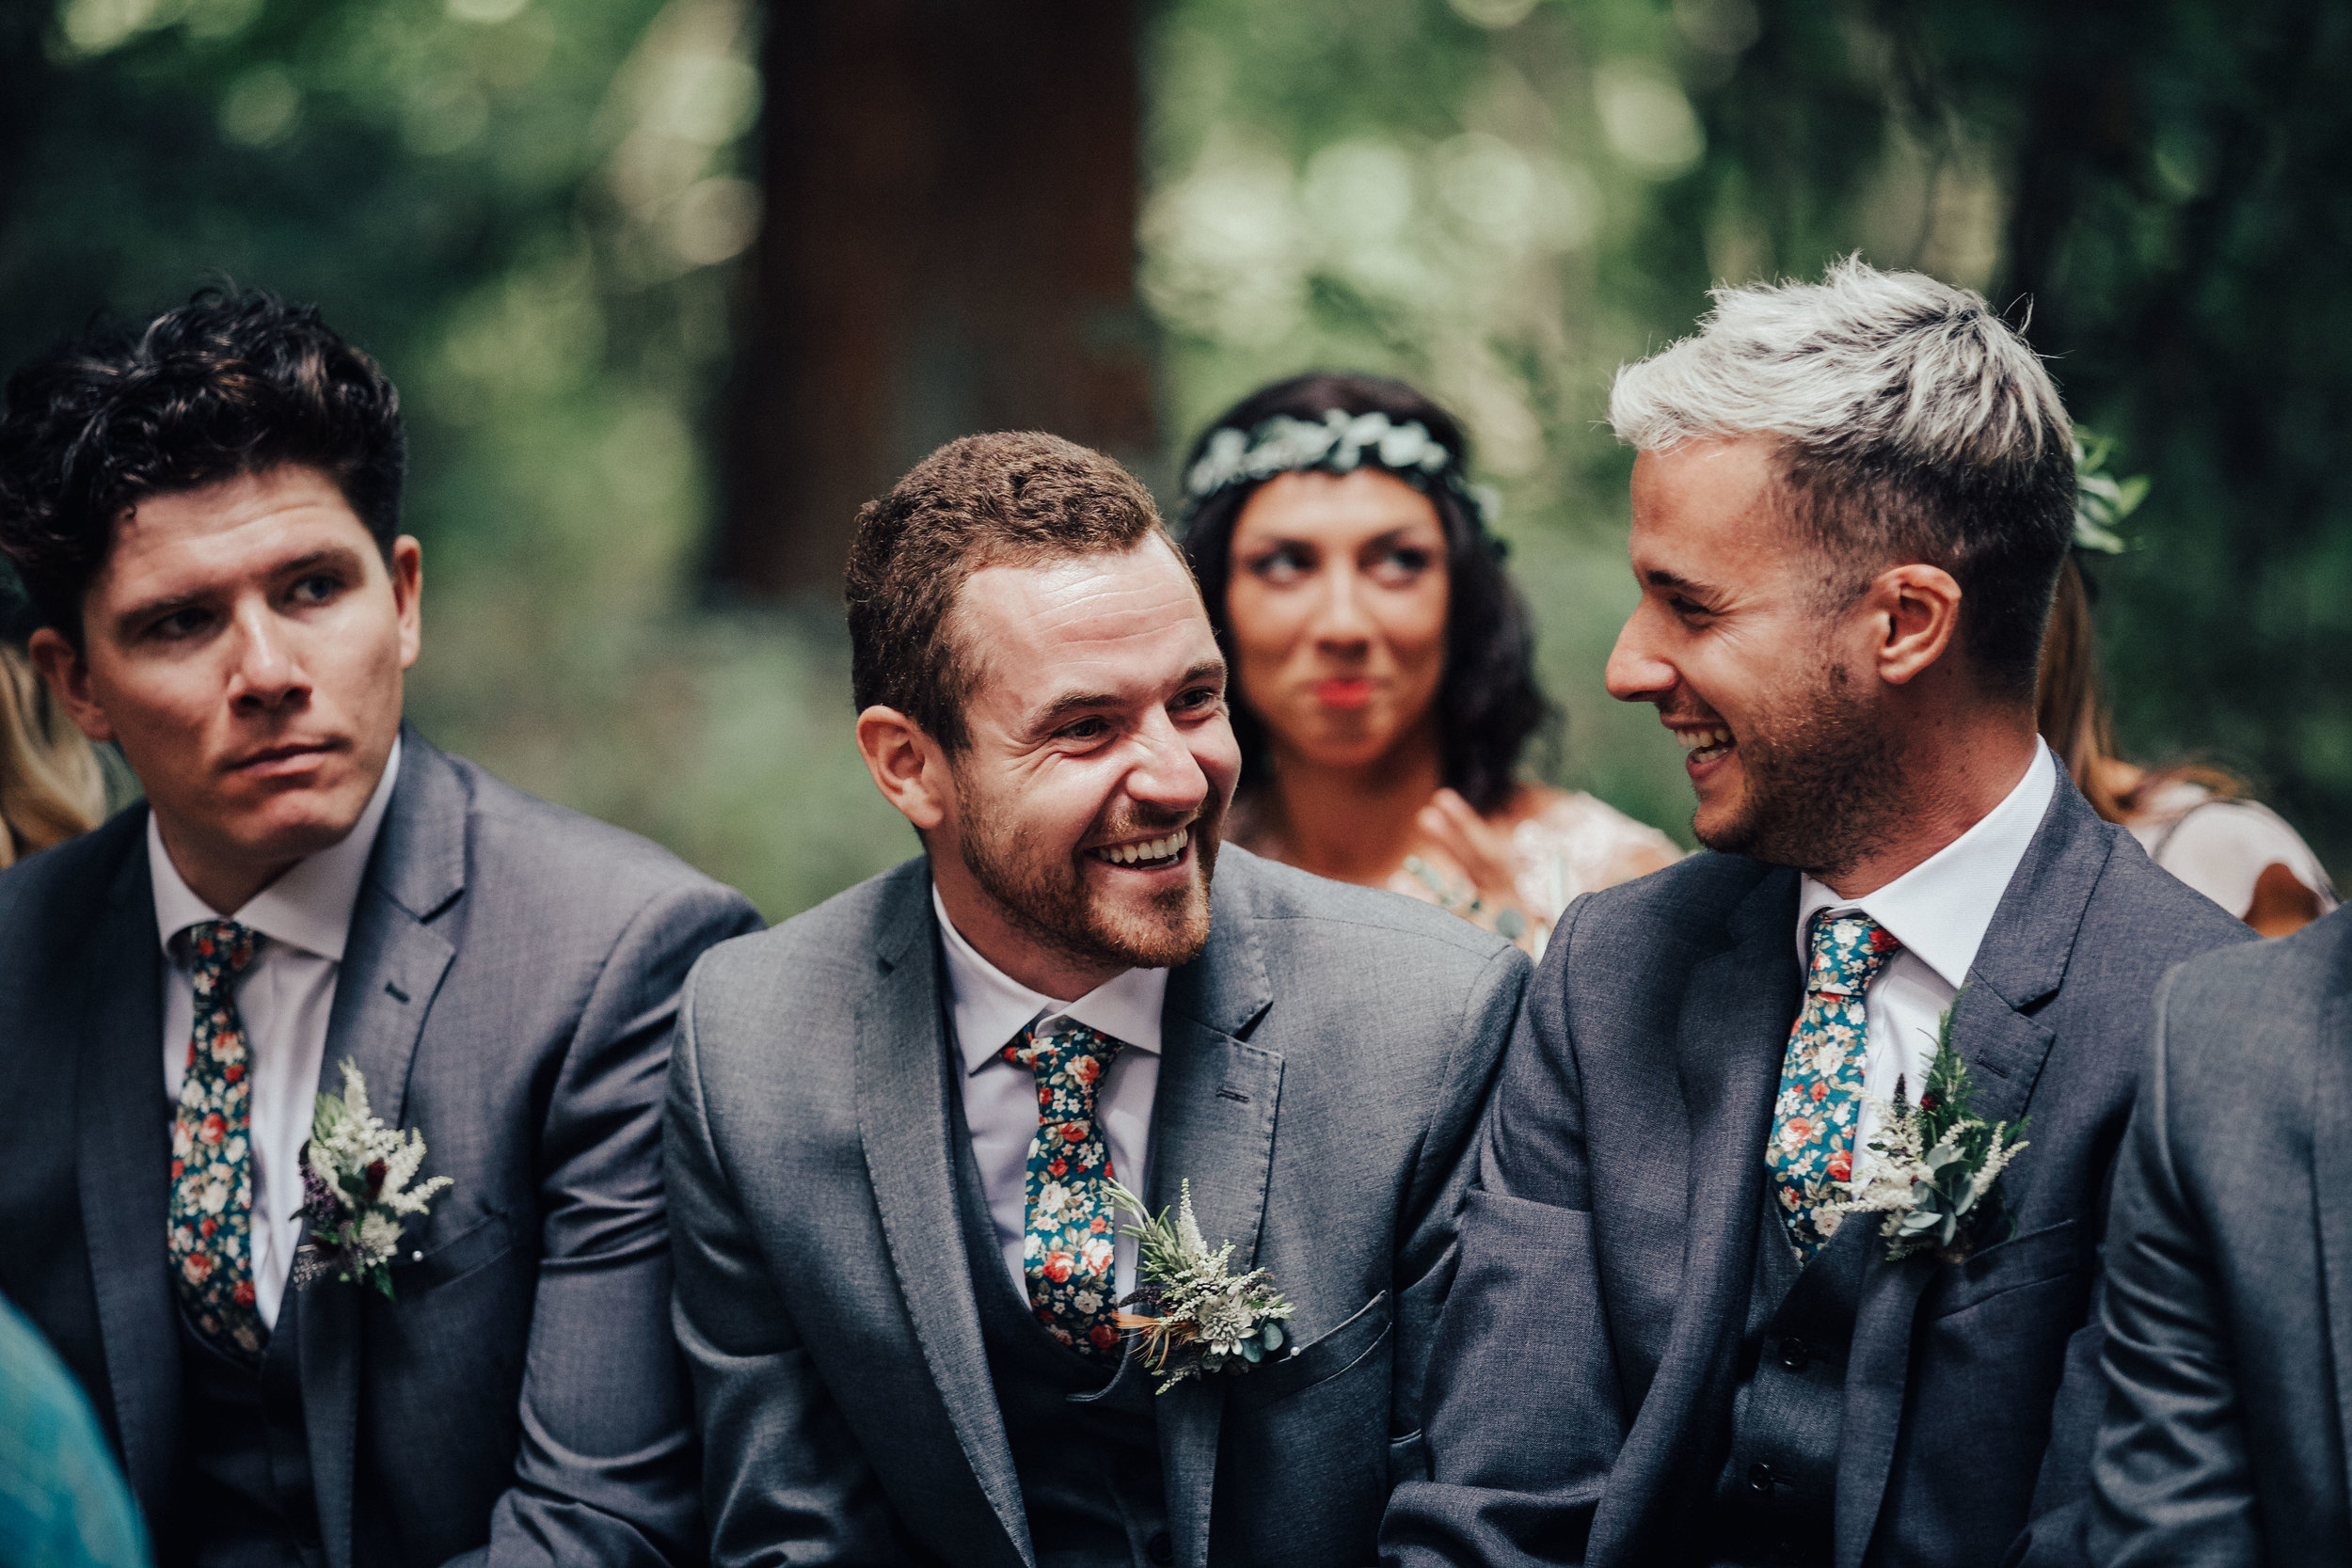 TWO_WOODS_ESTATE_WEDDING_PULBOROUGH_PJ_PHILLIPS_PHOTOGRAPHY_FRAN_&_GEORGE_95.jpg